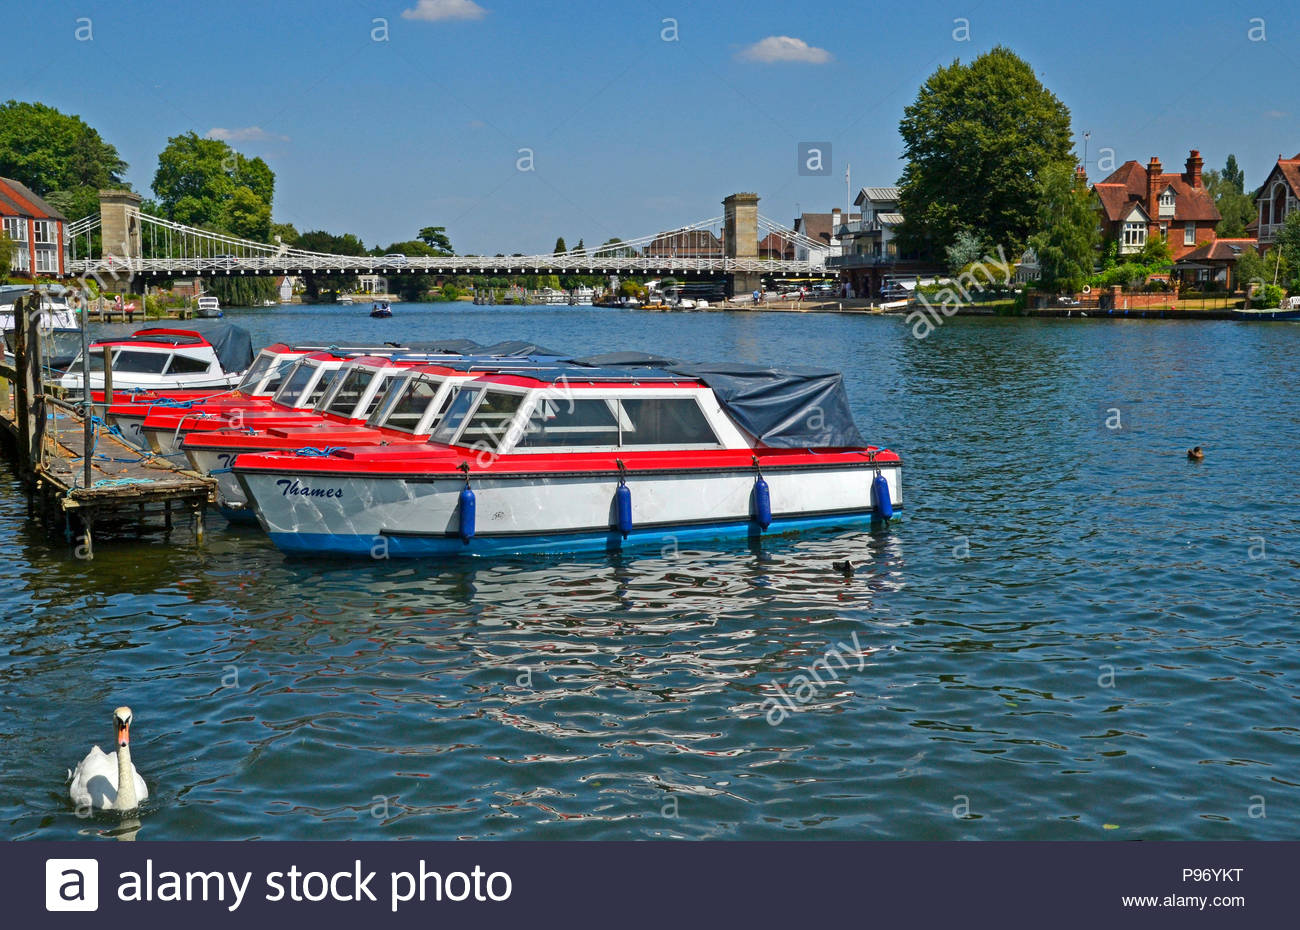 The River Thames in Marlow, Buckinghamshire, England, UK - Stock Image